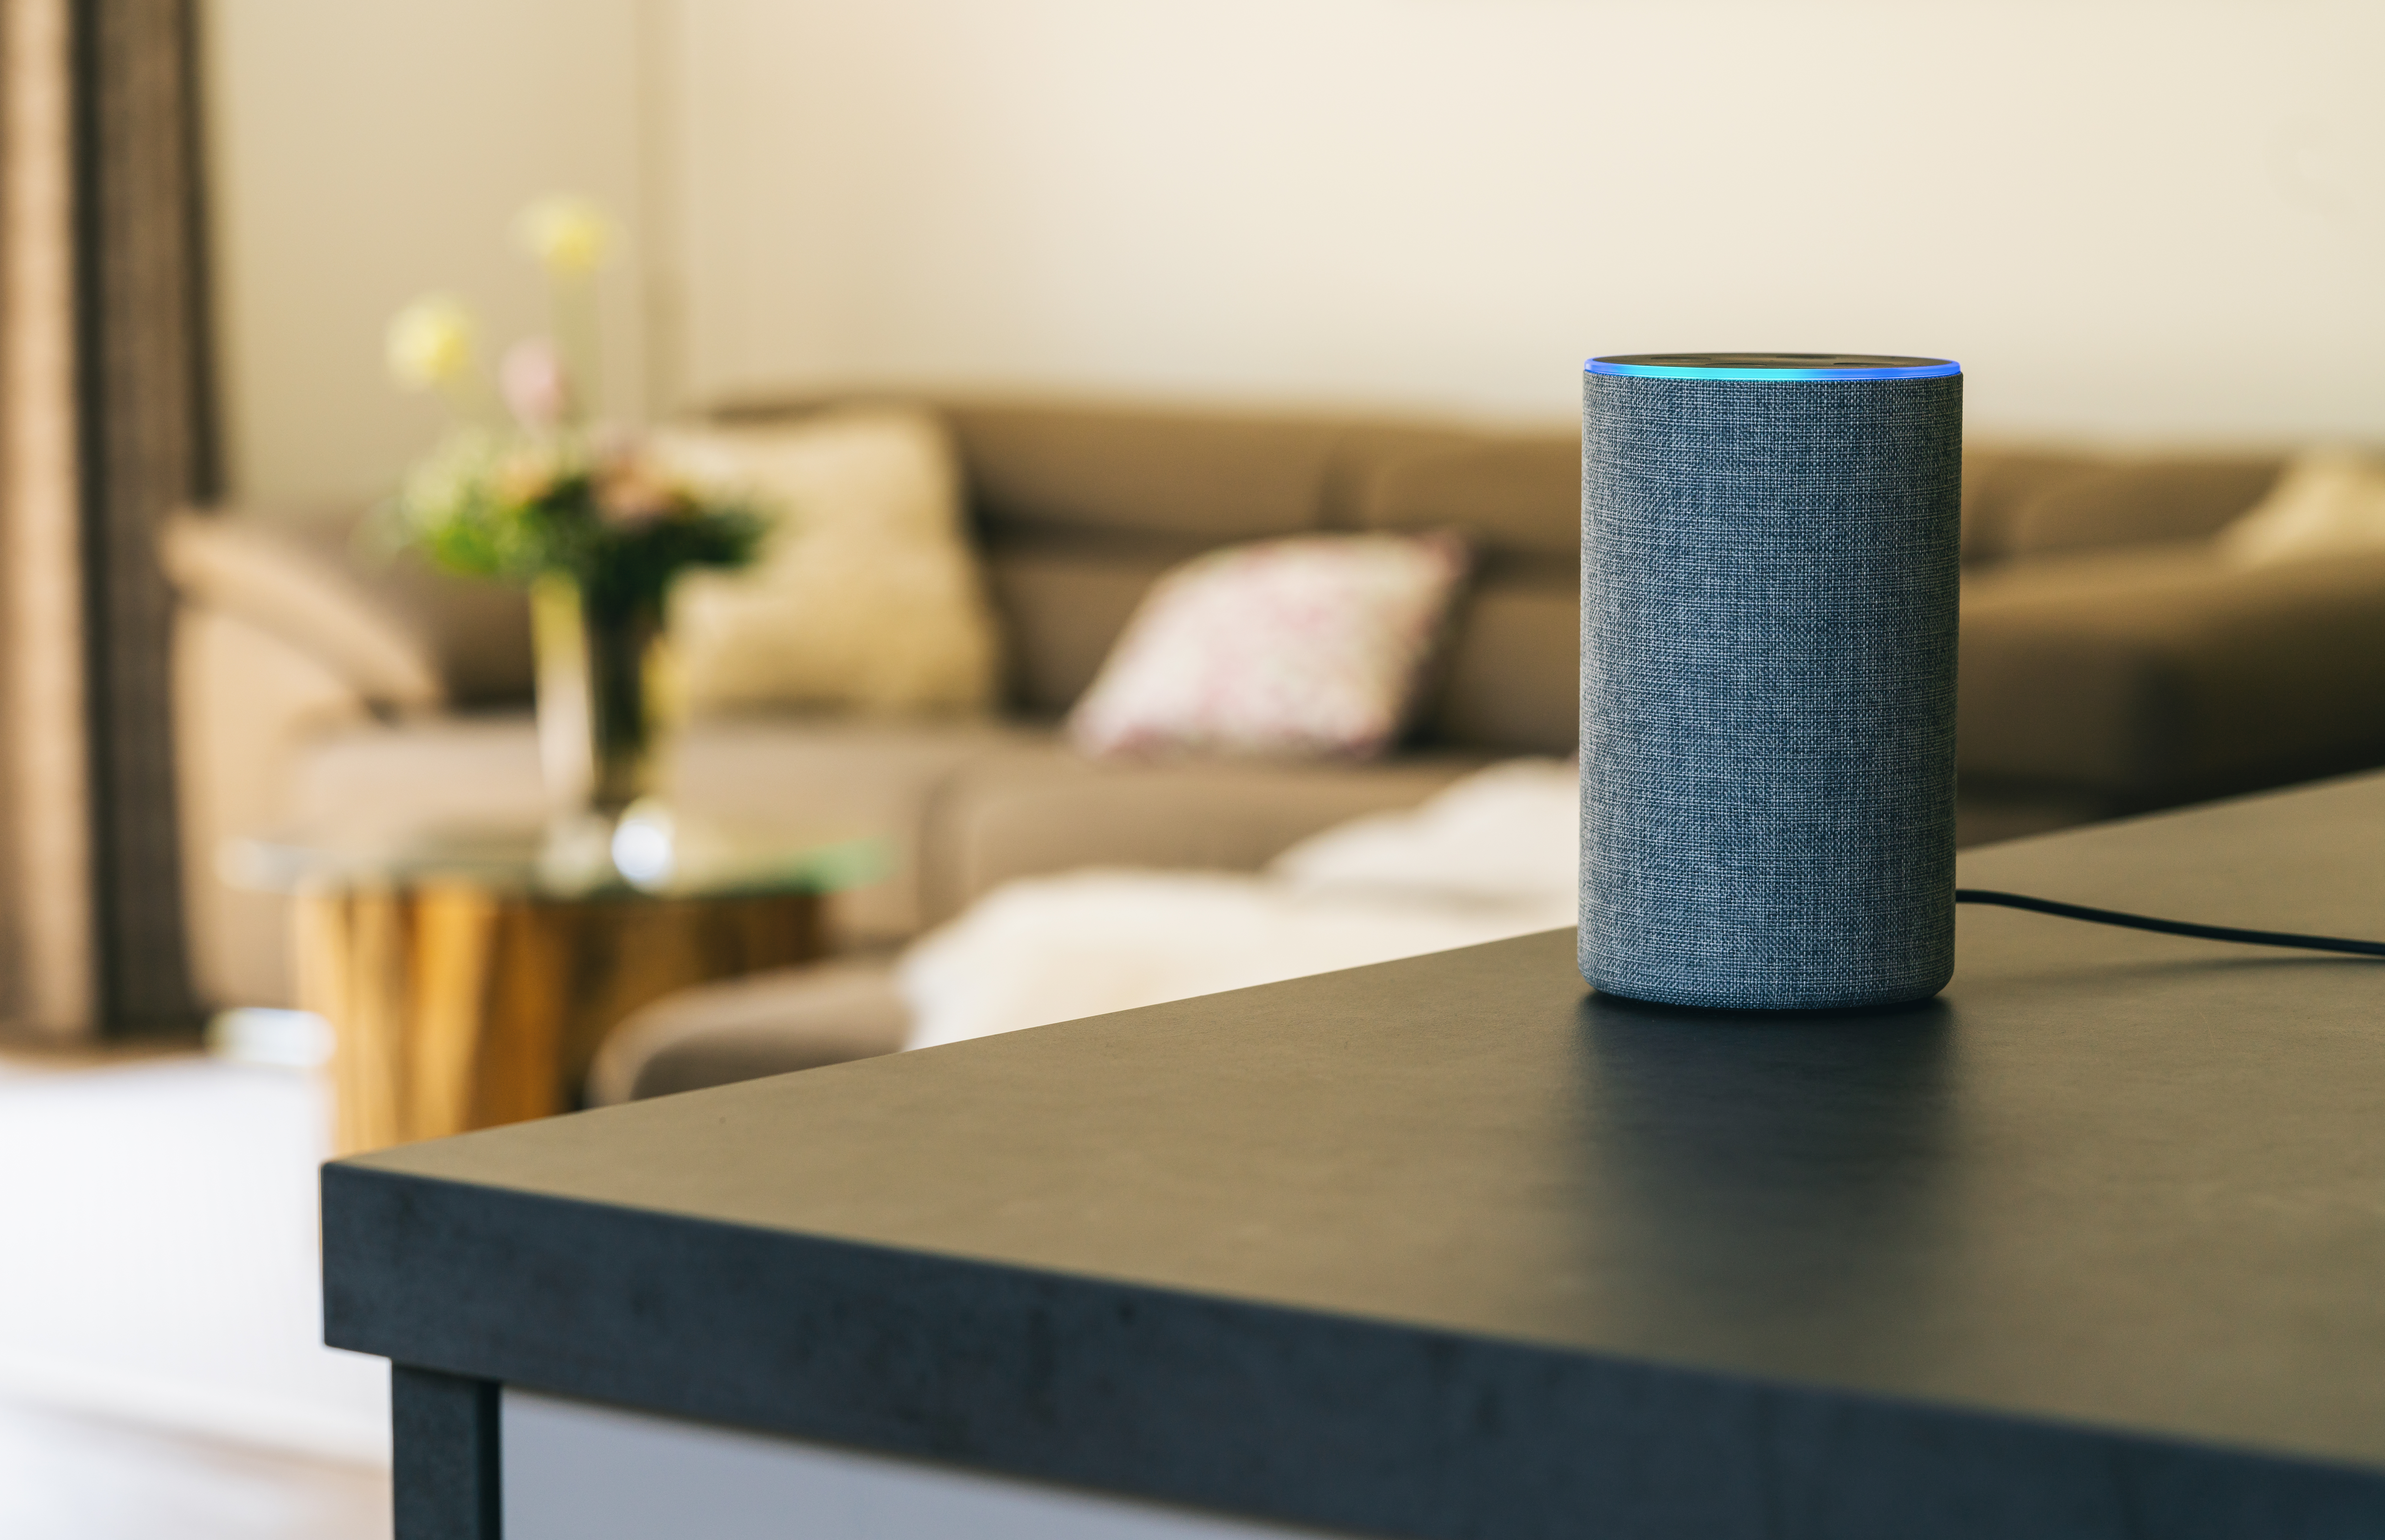 Voice controlled speaker and personal assistant on a table in a home.